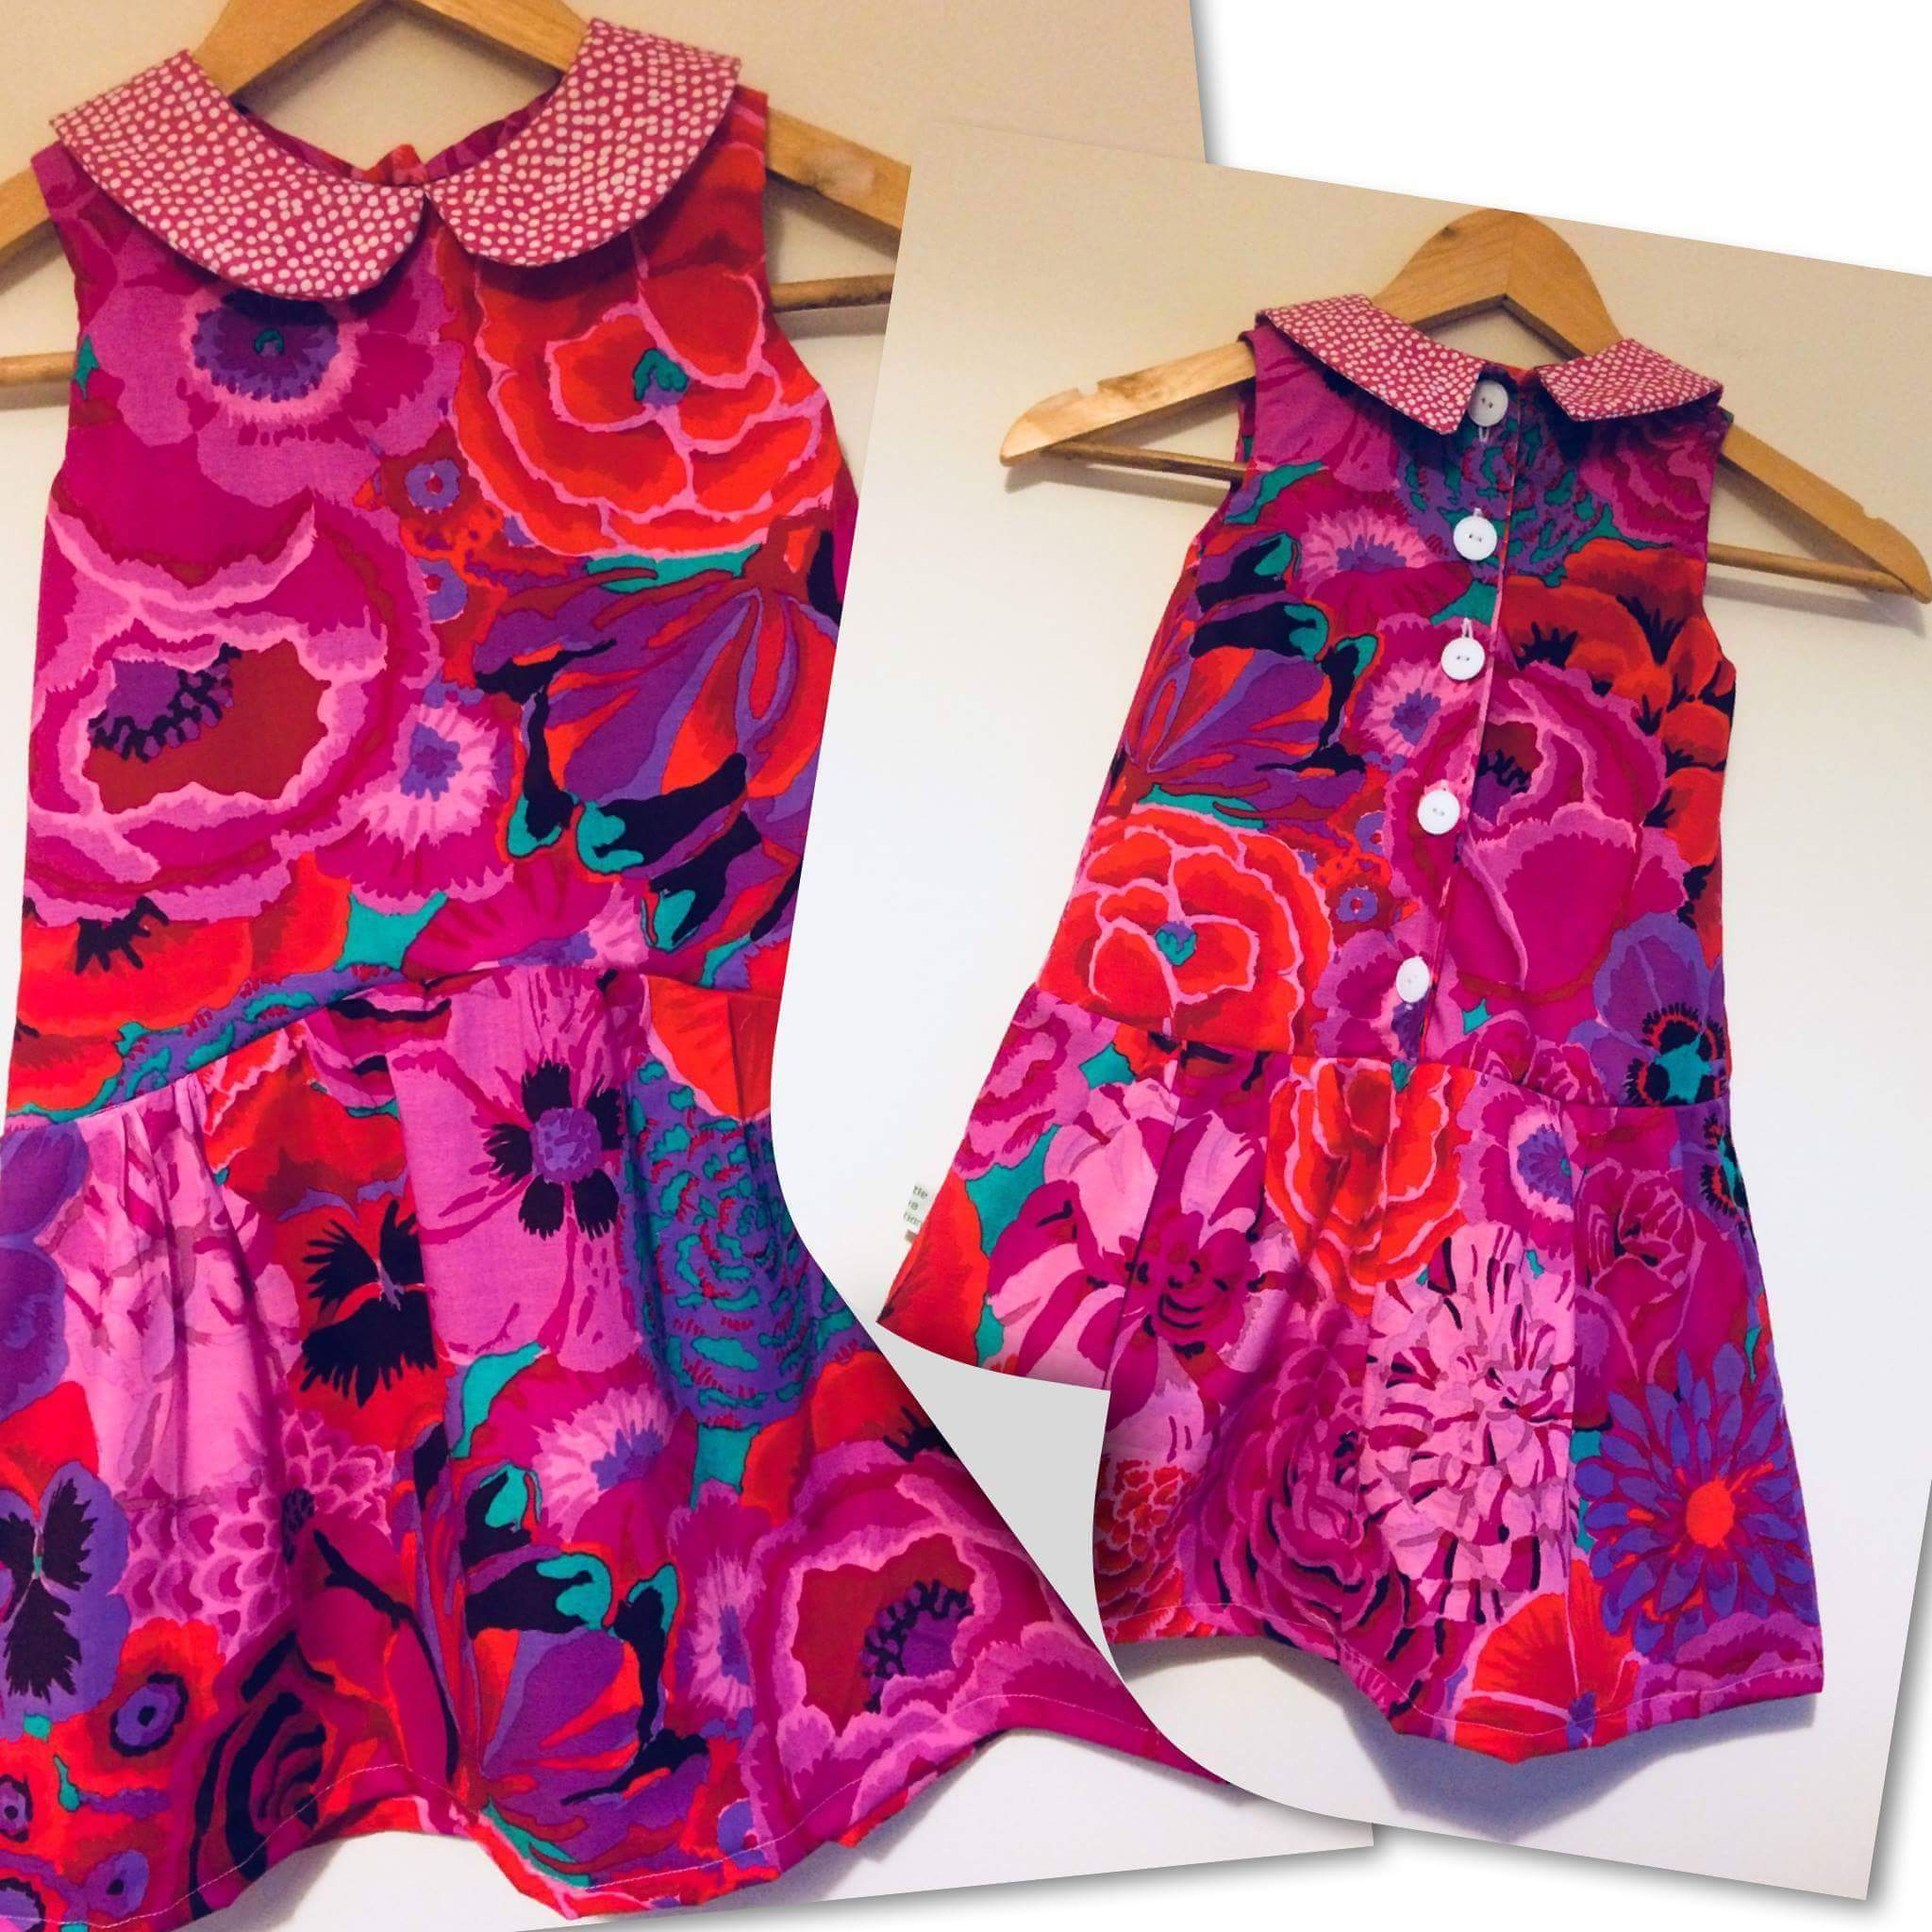 I can't resist these large florals and deep saturated colors for little garments! Darling!